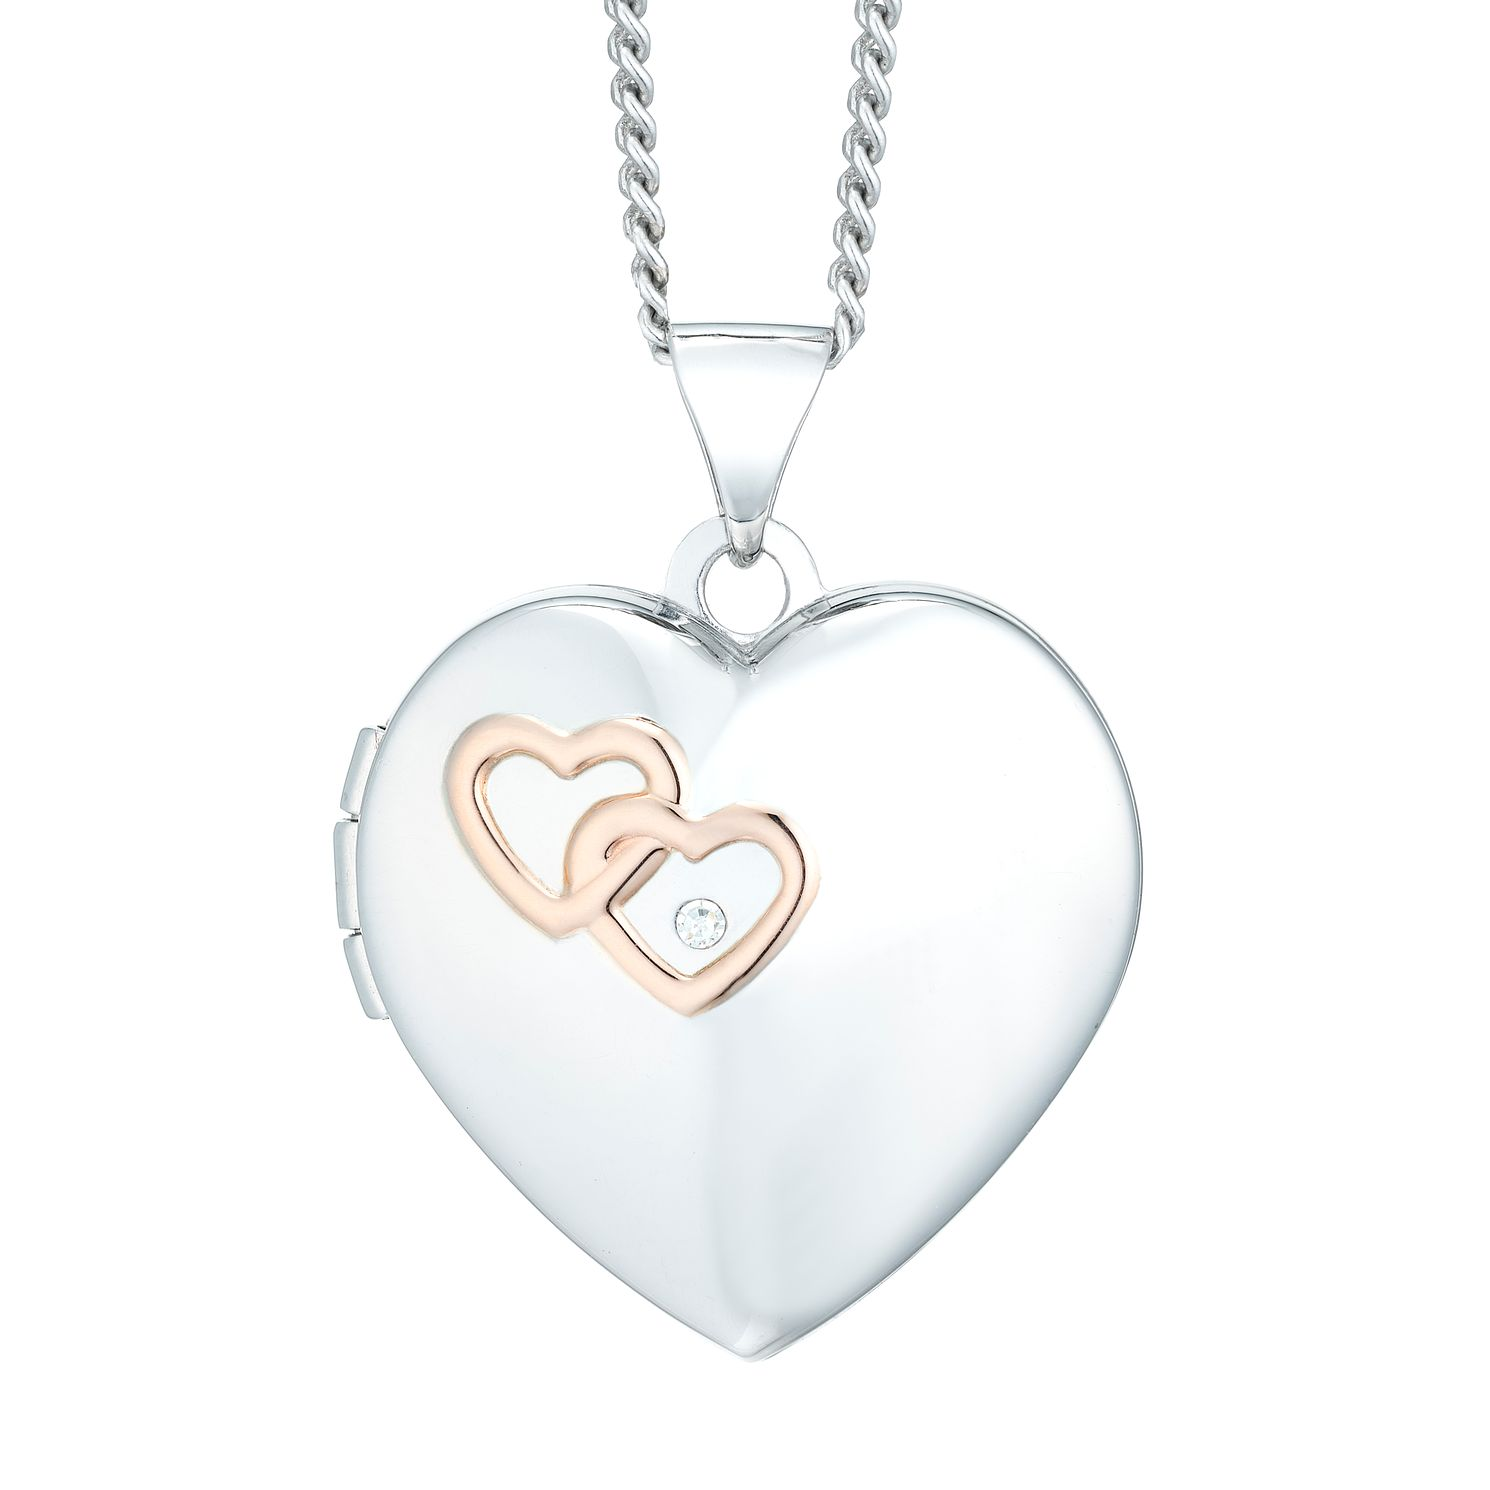 jrj johnny shop lockets heart swallow contemporary necklace rocket jewellery small locket large